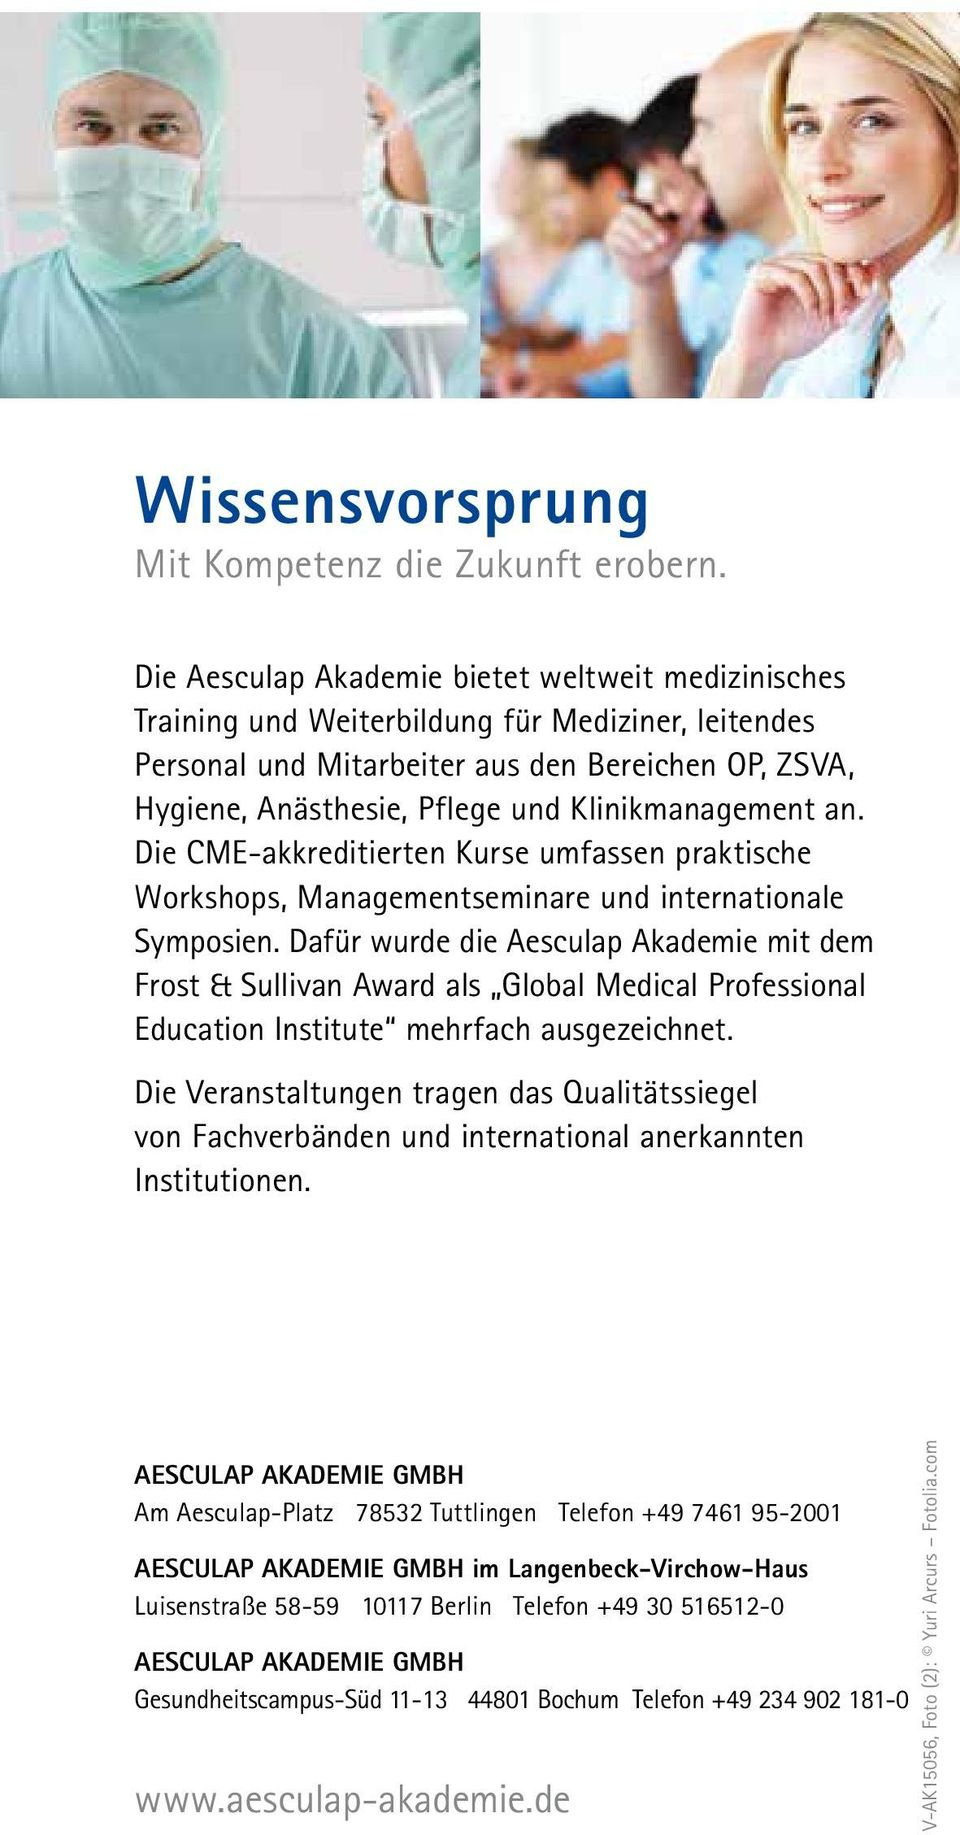 Klinikmanagement an. Die CME-akkreditierten Kurse umfassen praktische Workshops, Managementseminare und internationale Symposien.